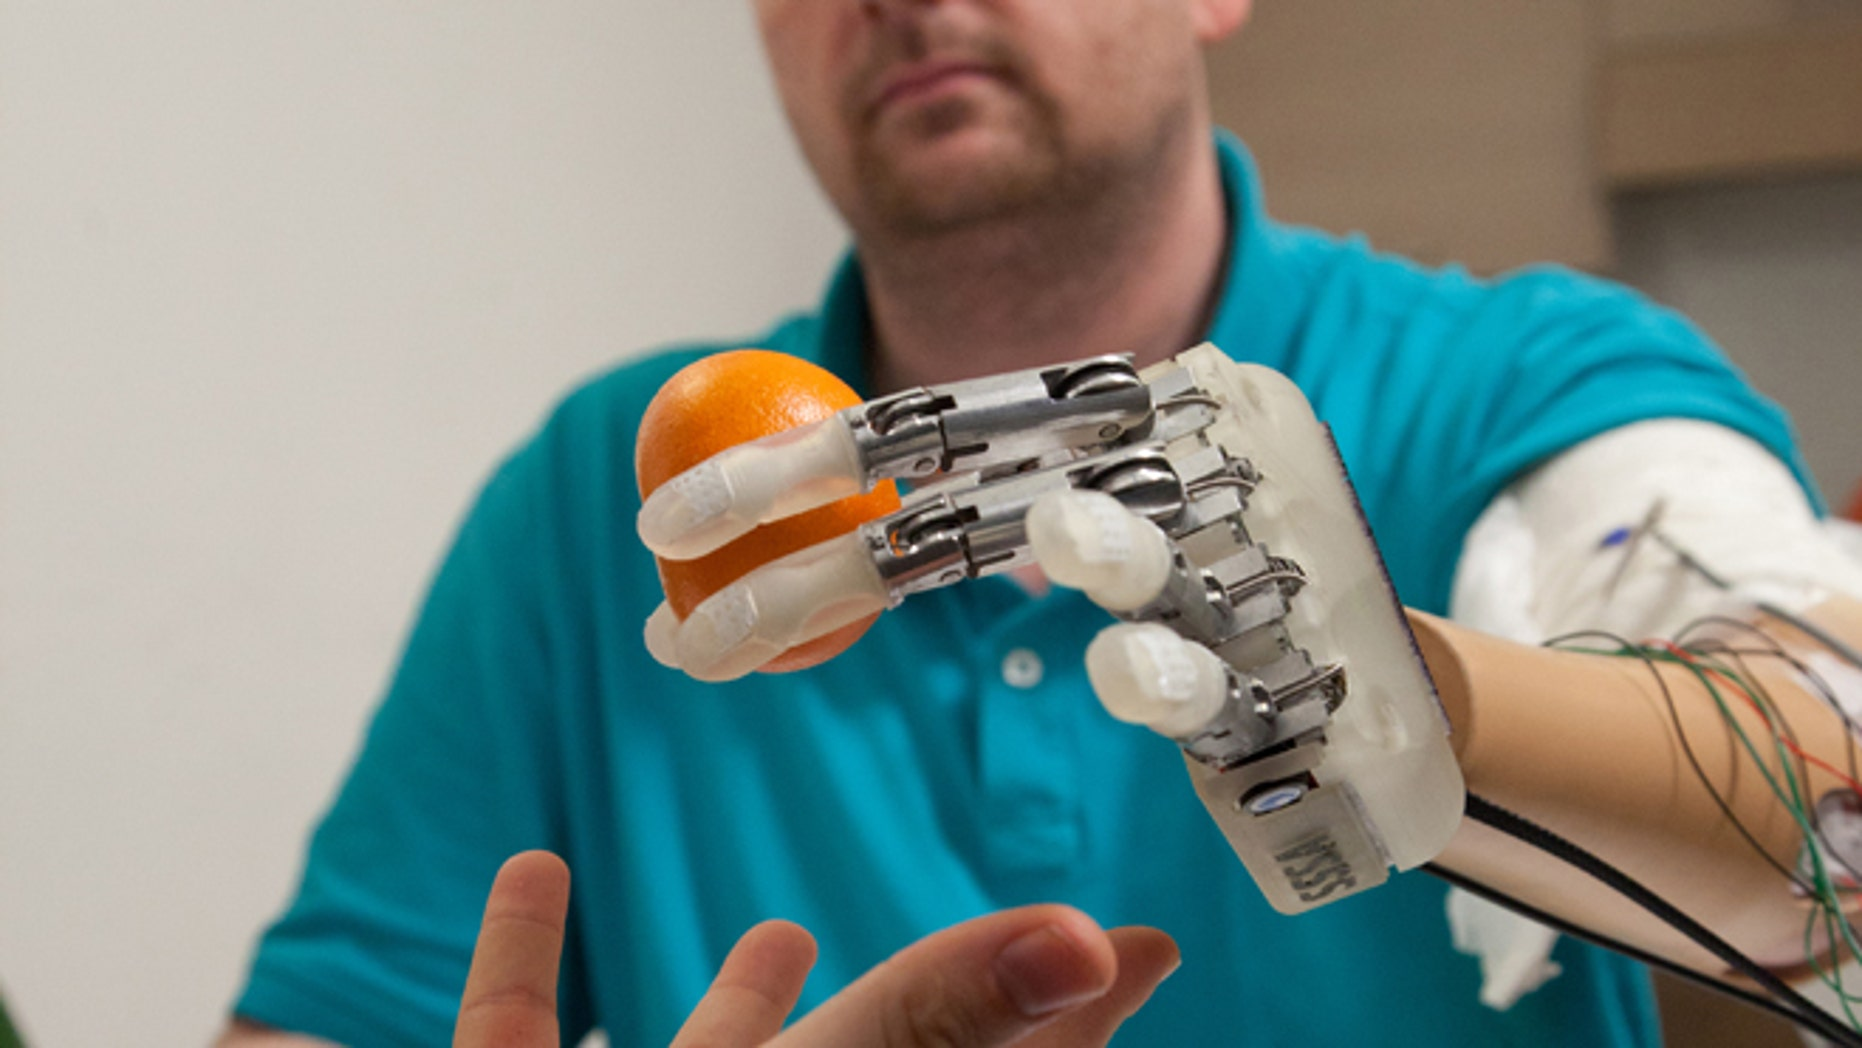 This March 2013 handout photo provided by Science Translational Medicine shows amputee Dennis Aabo Sørensen holding an orange while wearing sensory feedback enabled prosthesis in Rome. To feel what you touch _ that's the holy grail for artificial limbs. In a step toward that goal, European researchers created a robotic hand that let an amputee feel differences between a bottle, a baseball and a mandarin orange. (AP Photo/Patrizia Tocci, Science Translational Medicine)